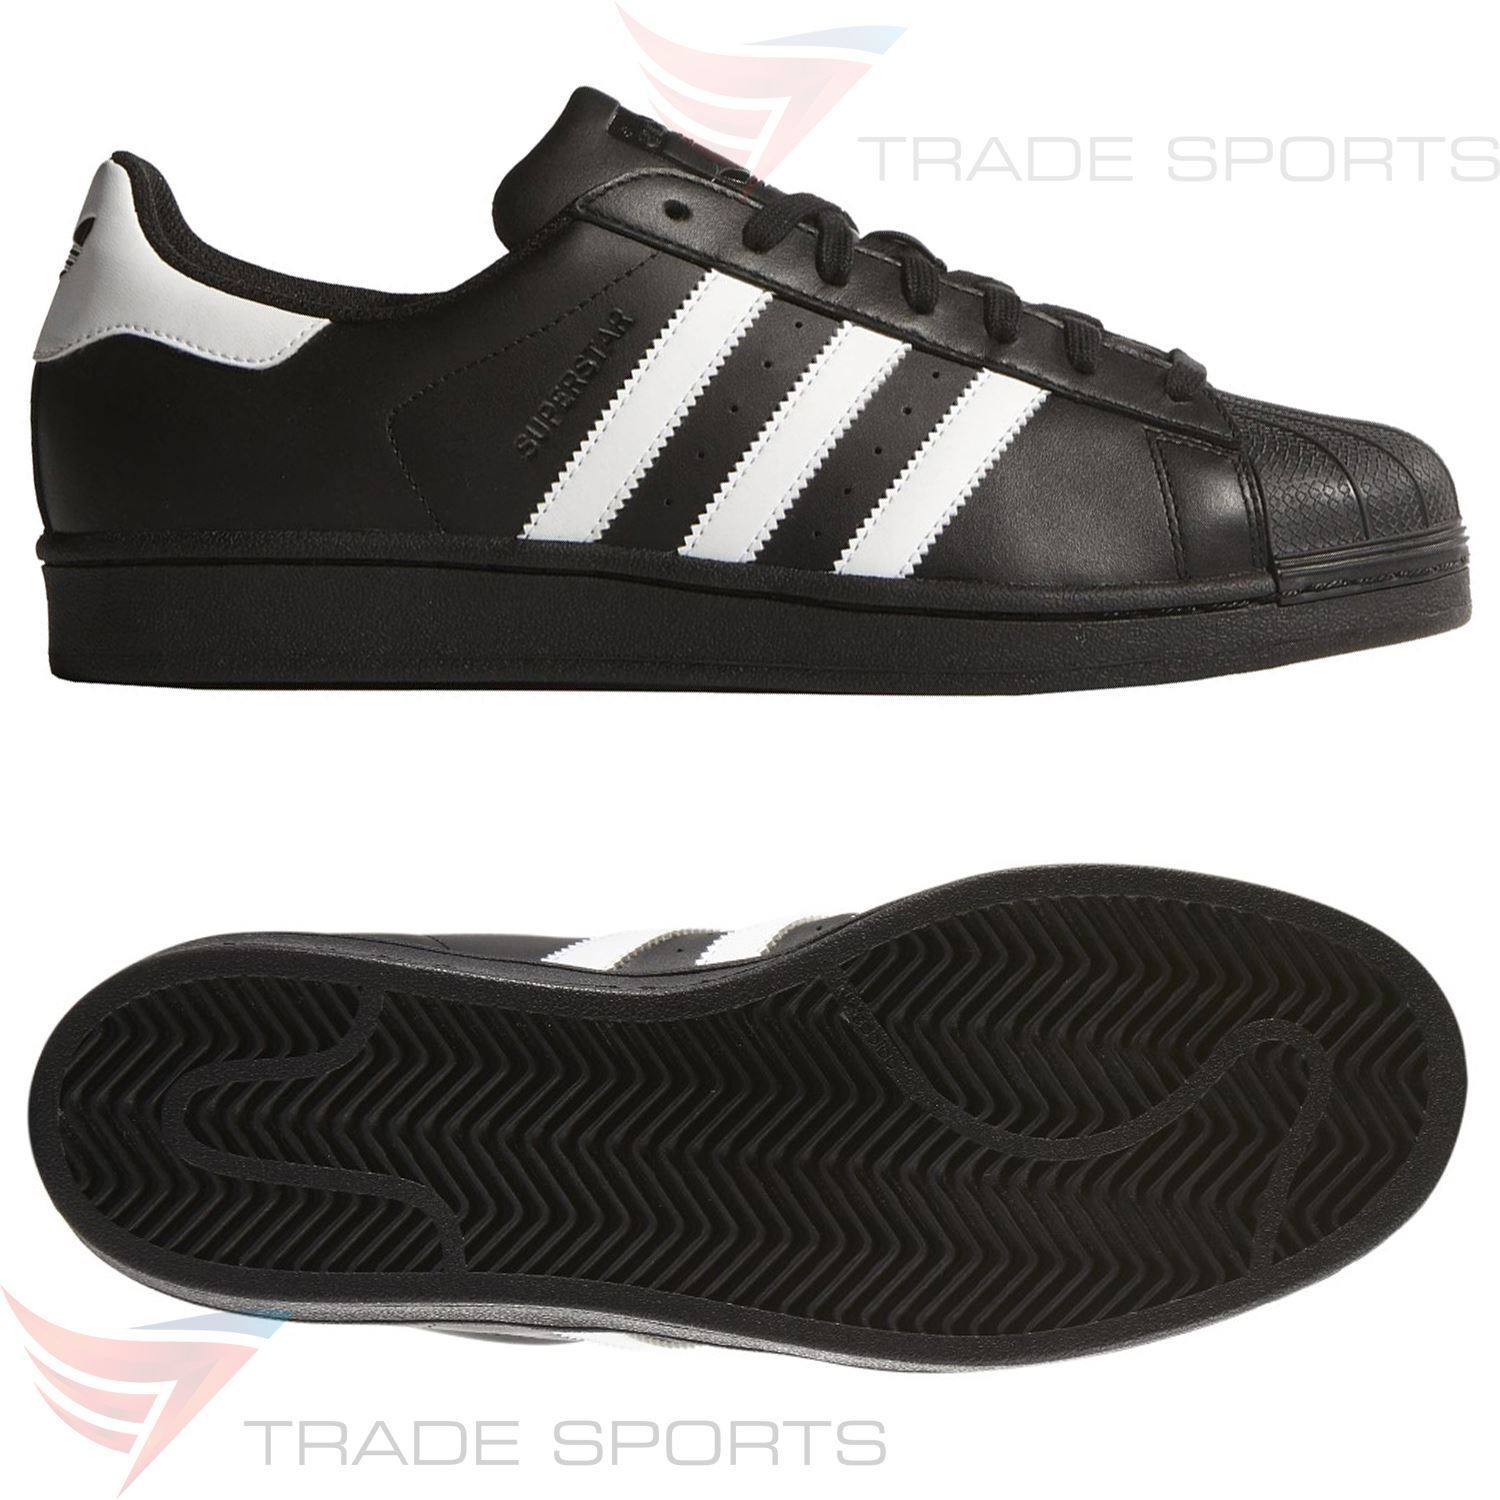 adidas ORIGINALS SUPERSTAR FOUNDATION TRAINERS Negro SNEAKERS RETRO RUN DMC Negro TRAINERS 82b937